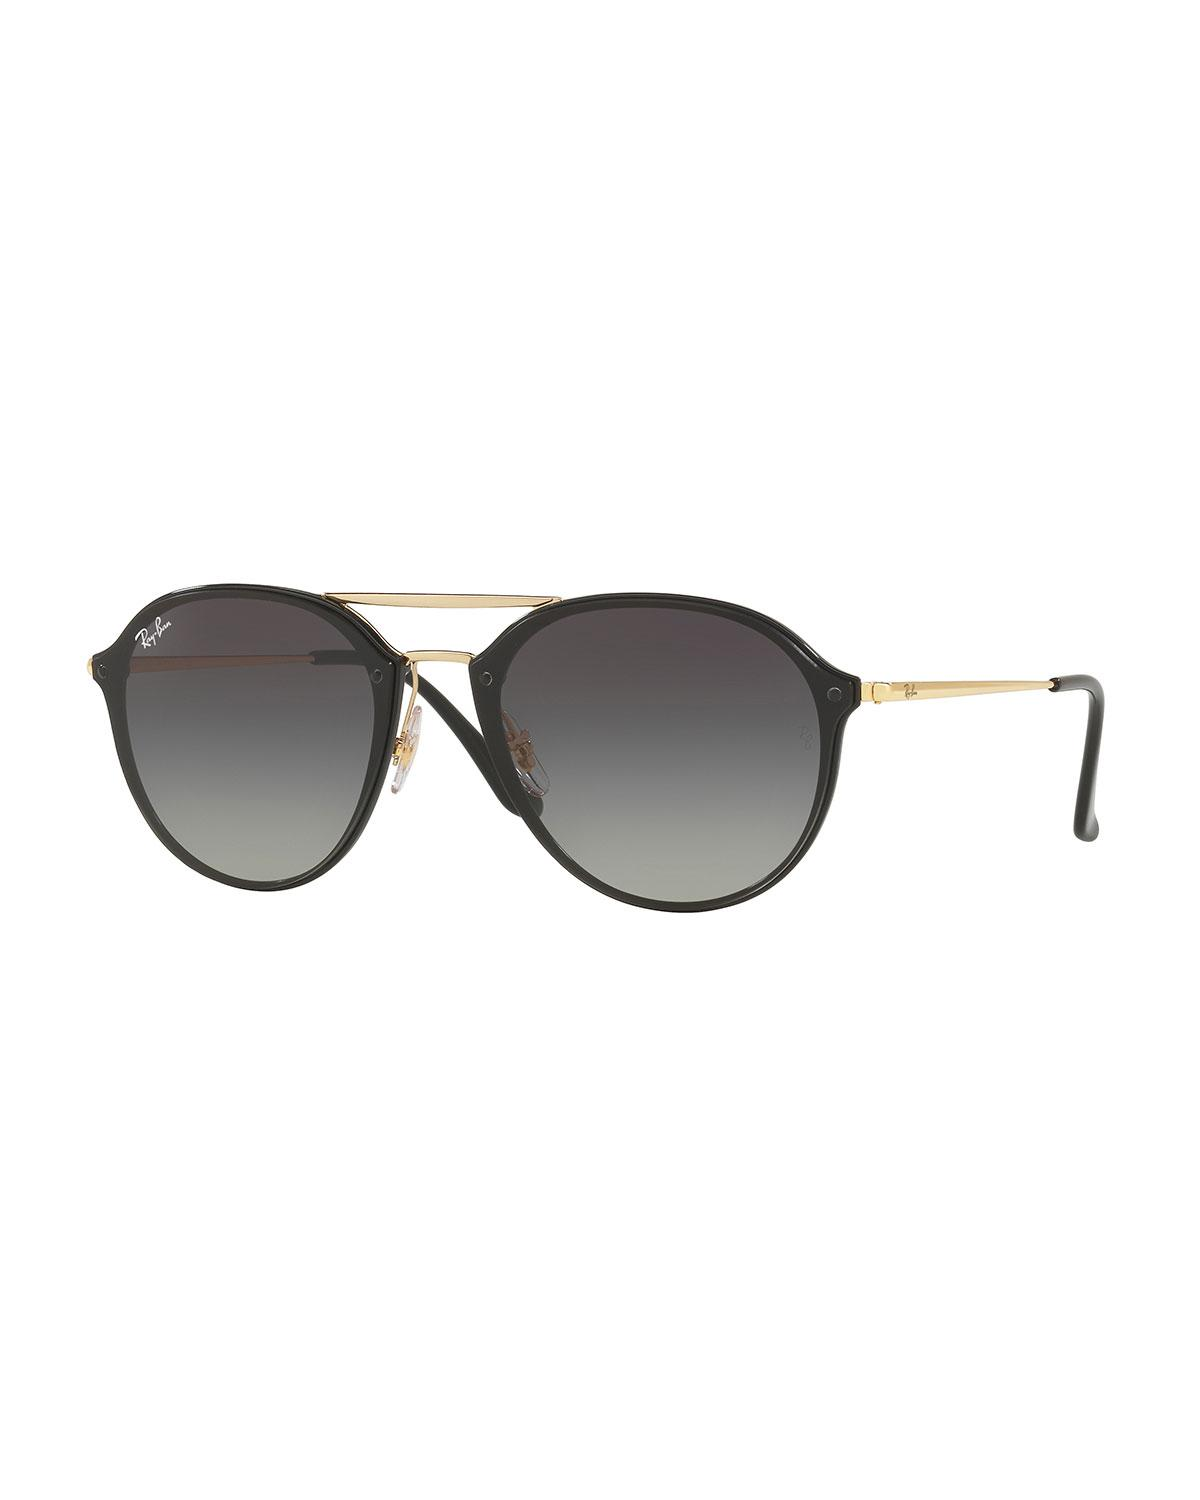 06990841e2 Lyst - Ray-Ban Round Gradient Mirrored Sunglasses in Brown